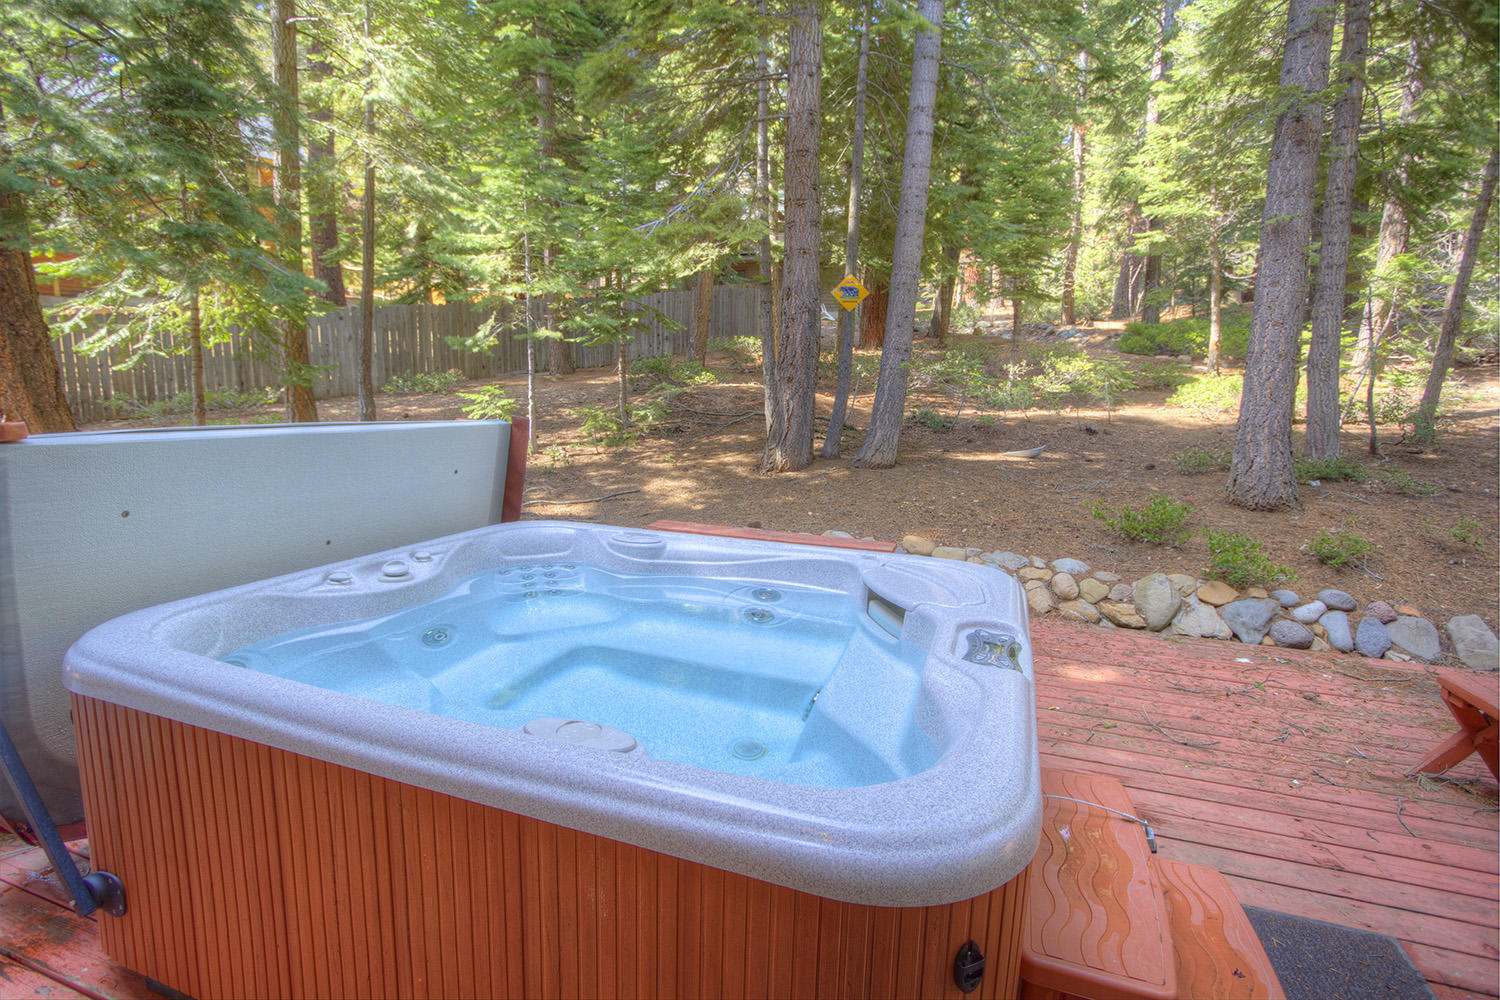 nsh0847 Hot Tub